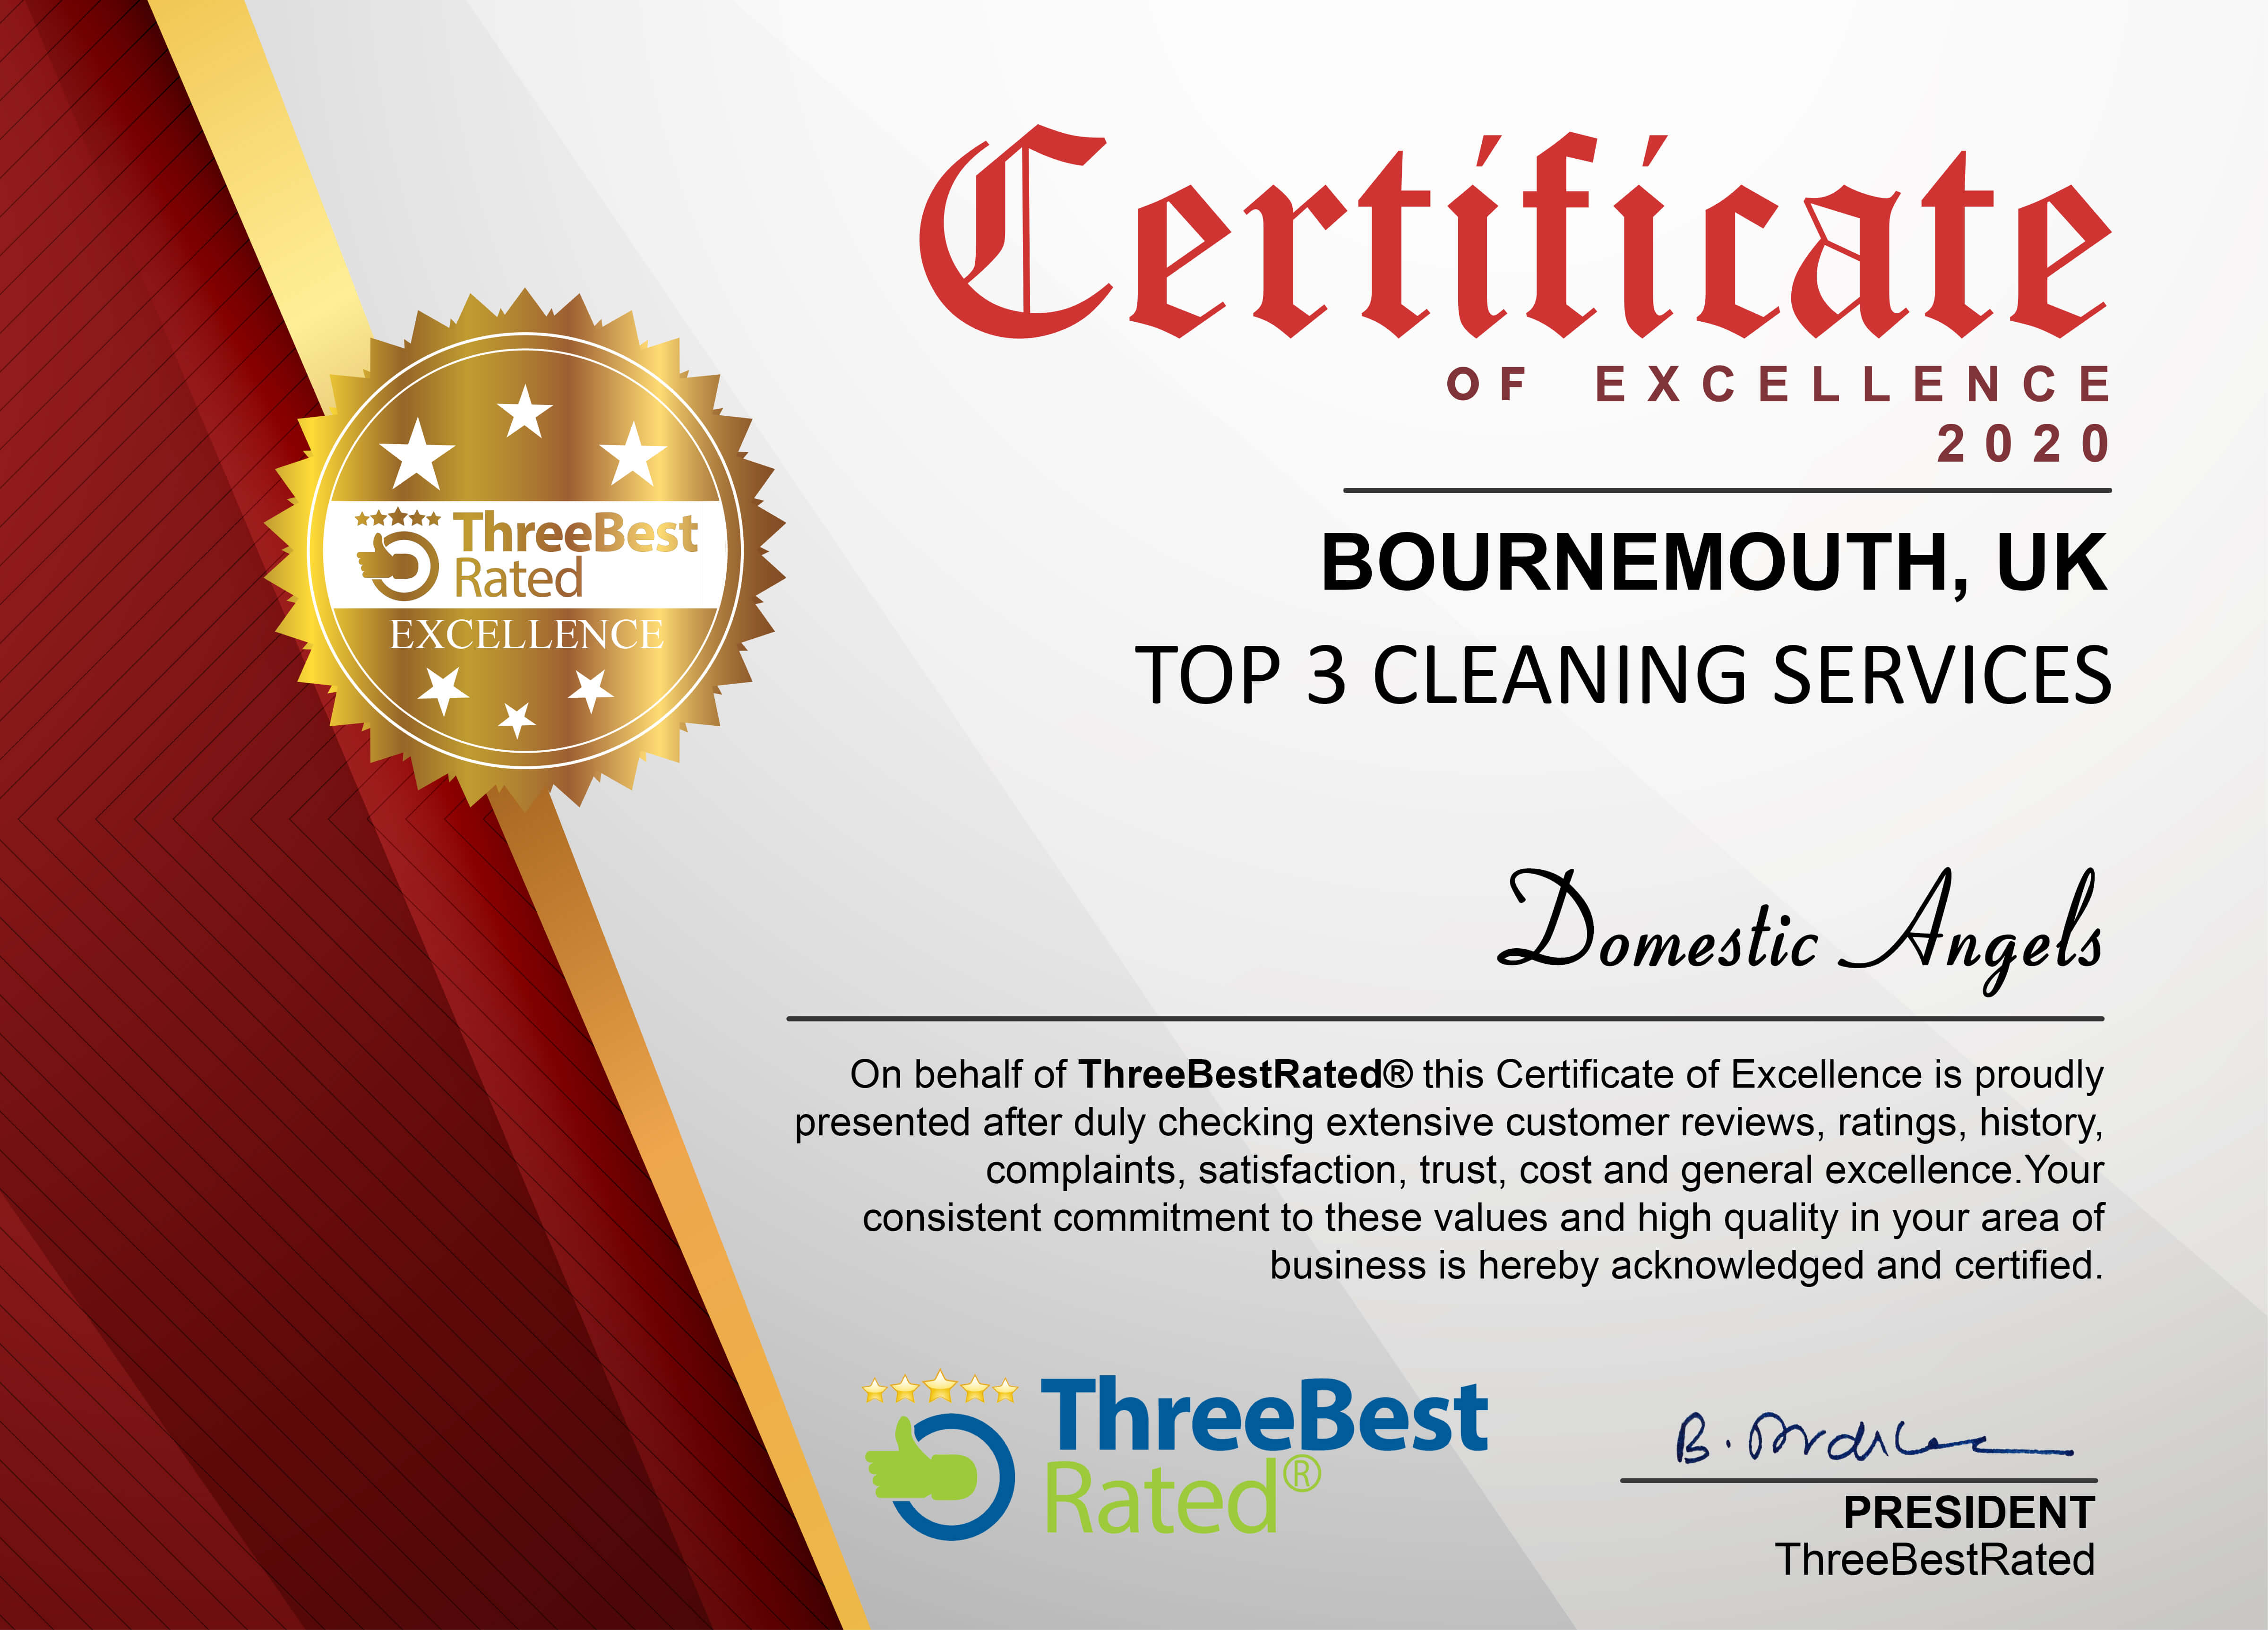 Three Best Rated Cleaning Services 2020